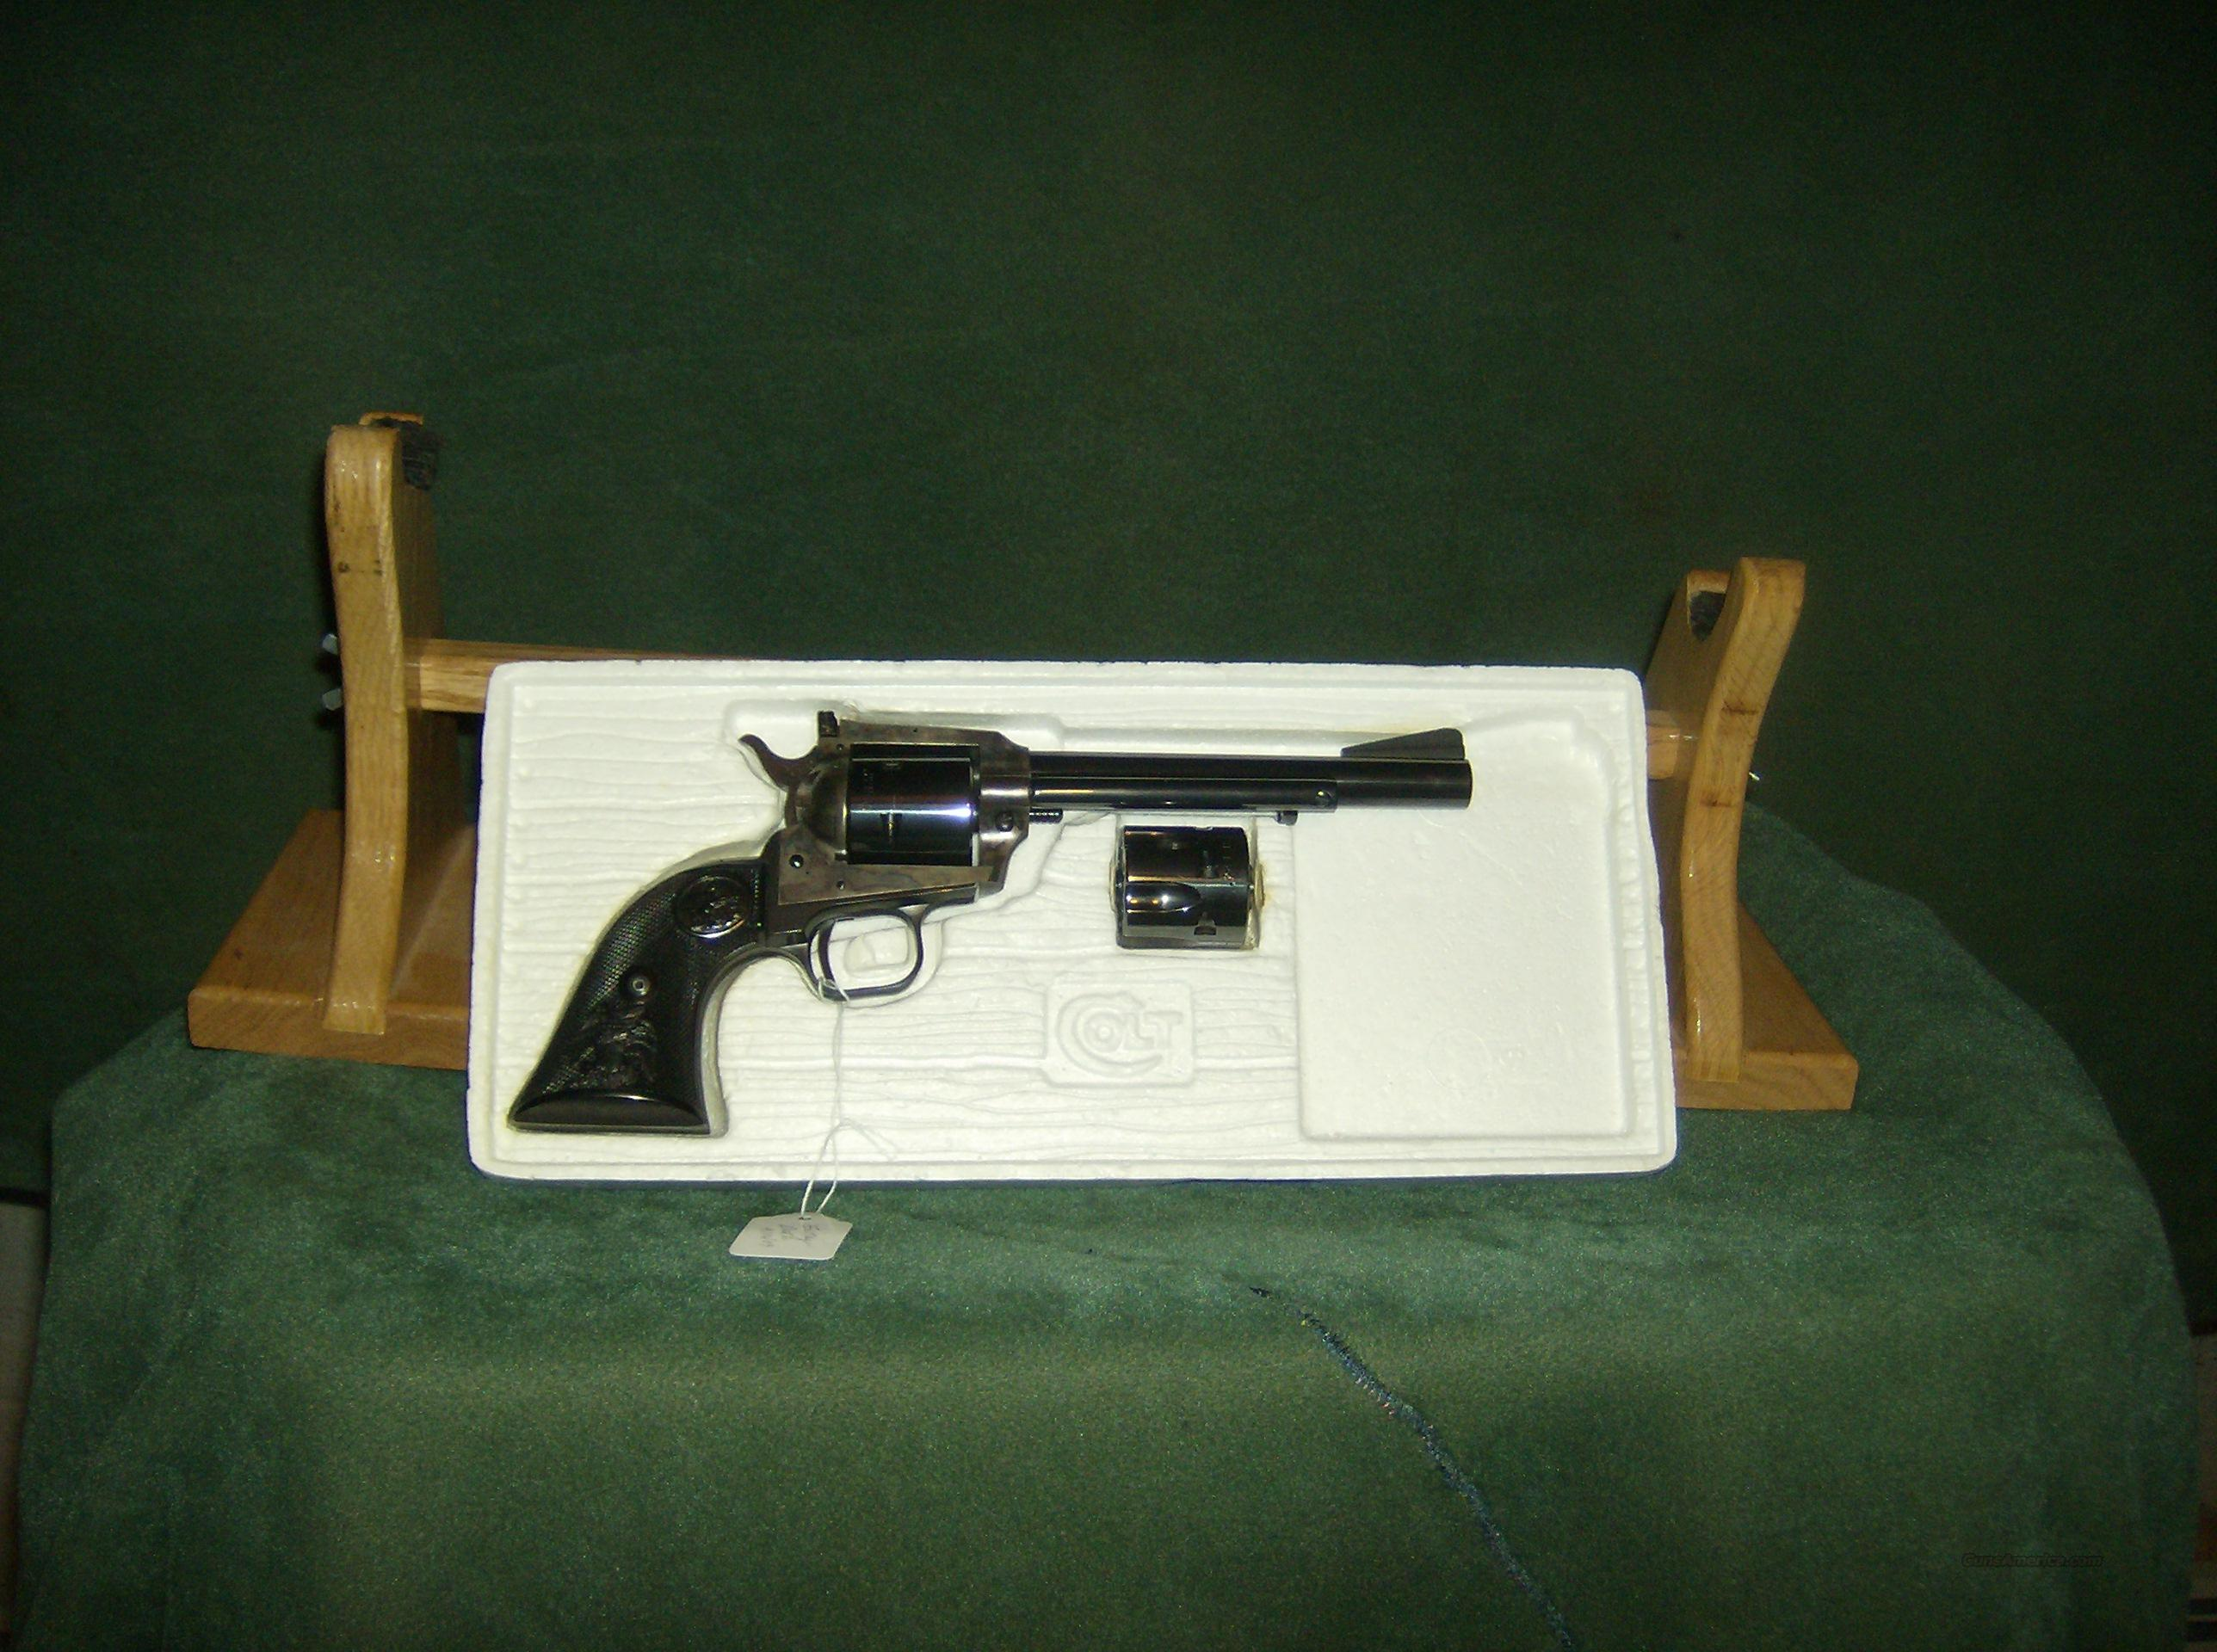 COLT NEW FRONTIER 22 SCOUT  Guns > Pistols > Colt Single Action Revolvers - Modern (22 Cal.)